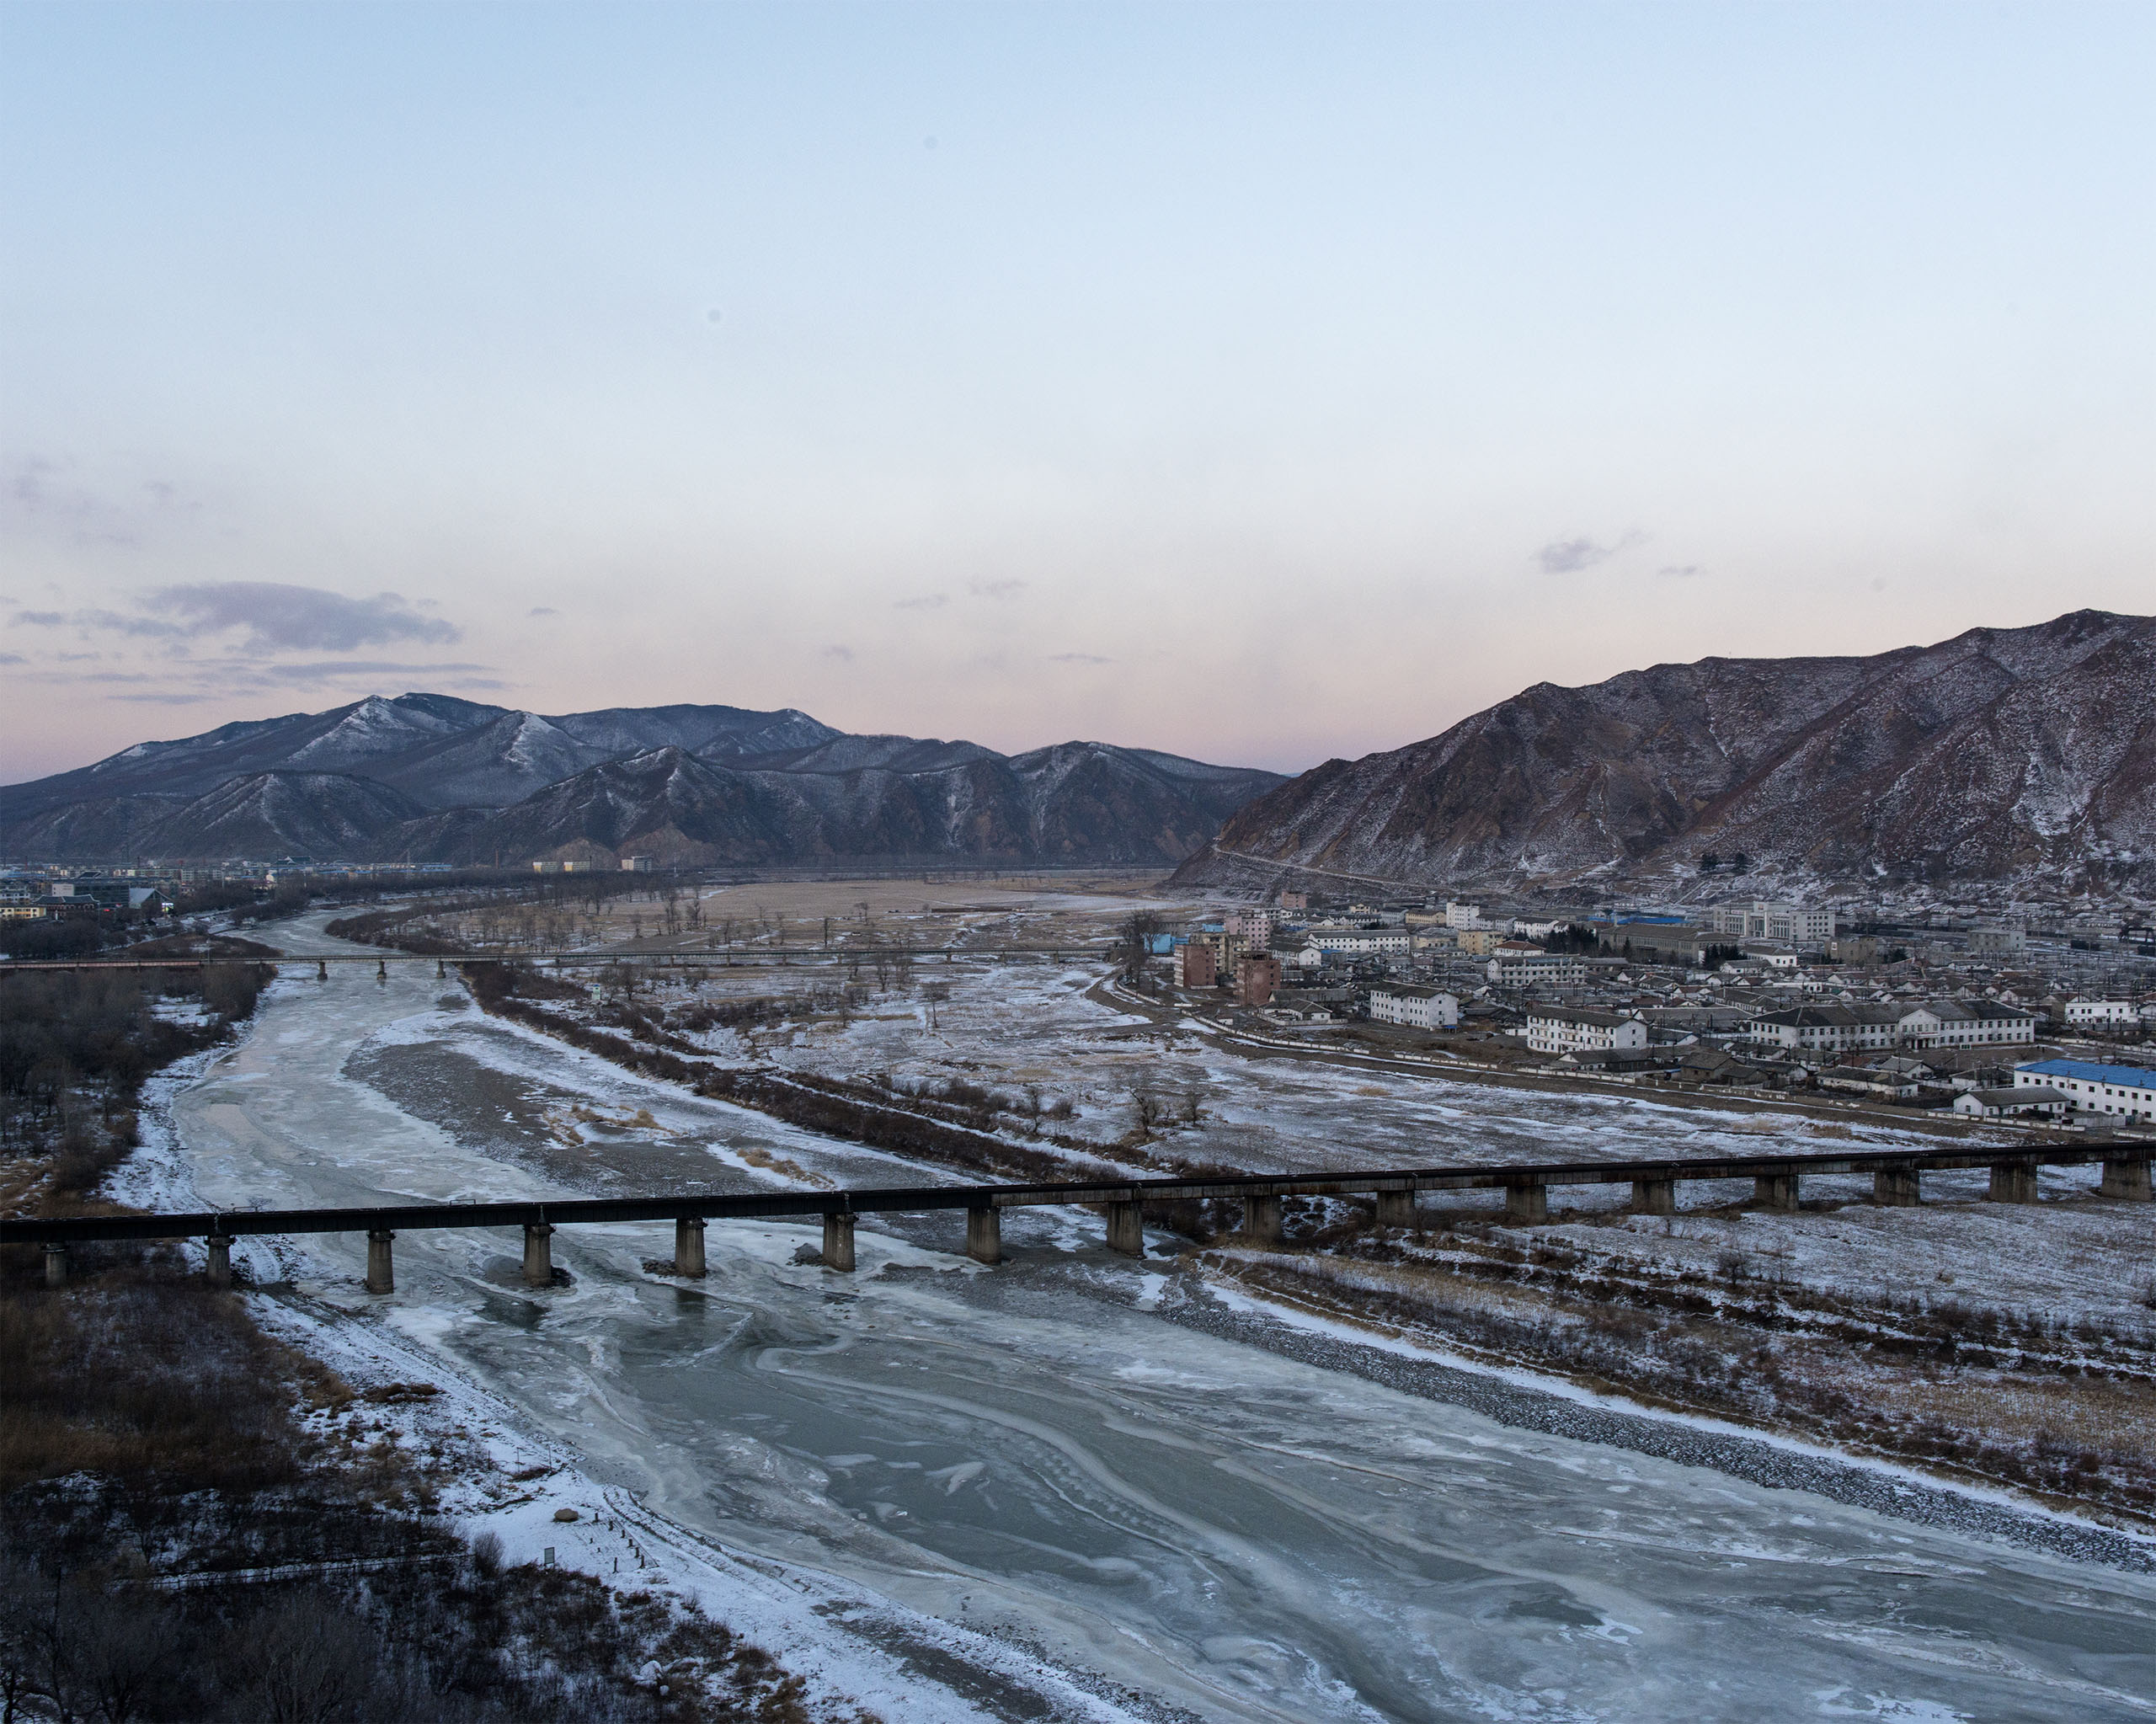 A view of the Tumen river which separates Tumen, China from Namyang, Onsong county, North Korea, at left. Tumen has a very large population of ethnic Koreans, and a   detention center for captured North Koreans awaiting deportation.